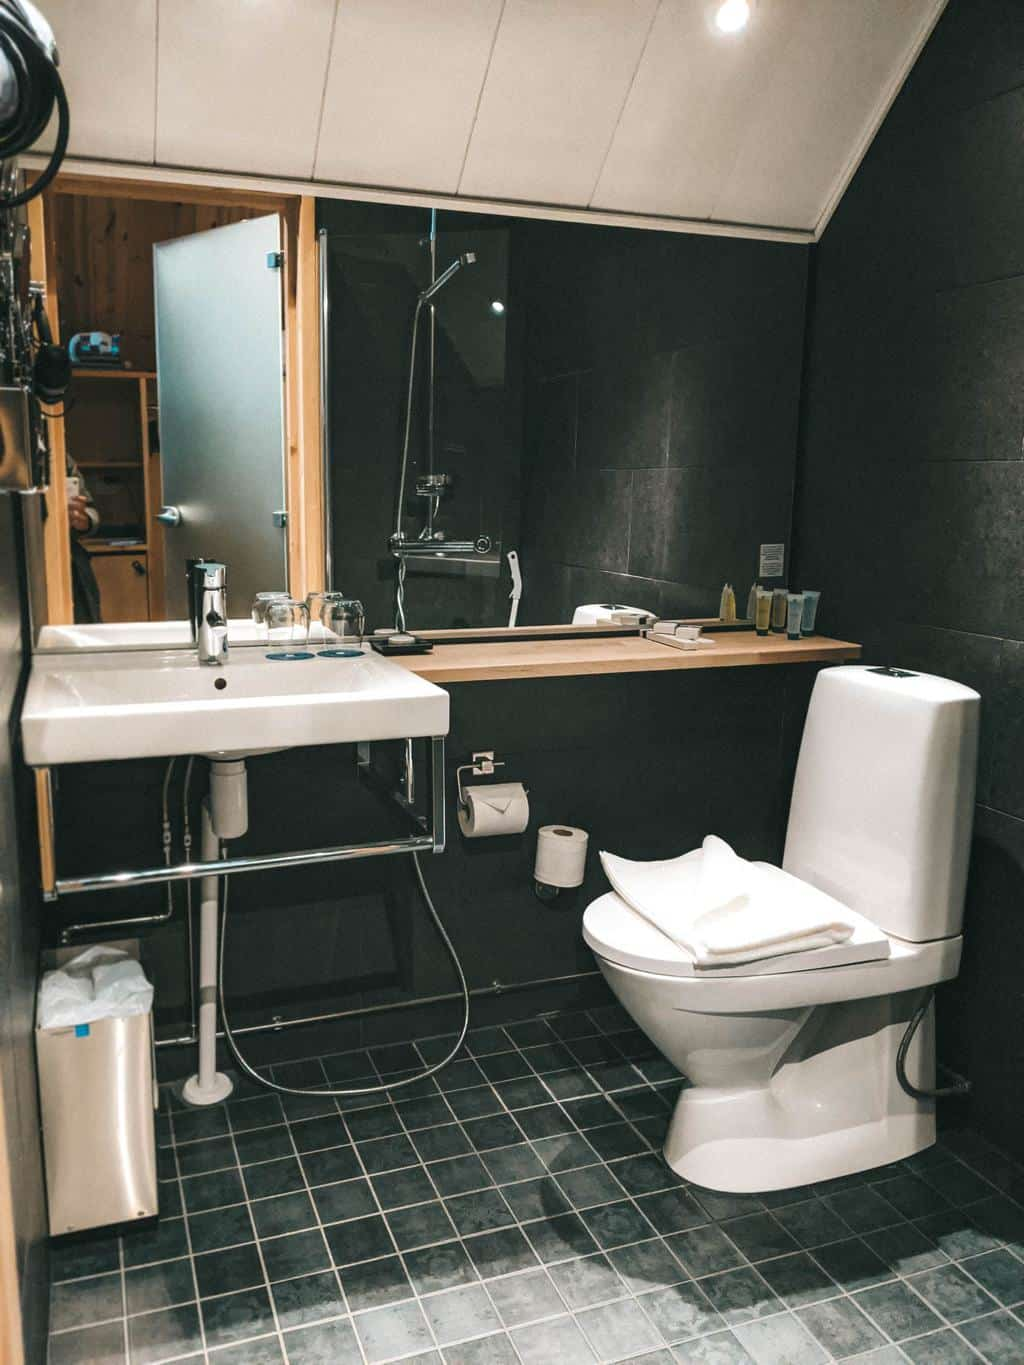 A stylist bathroom in the aurora cabin Finnish Lapland, Lapland destinations, Lapland Finland, Inghams